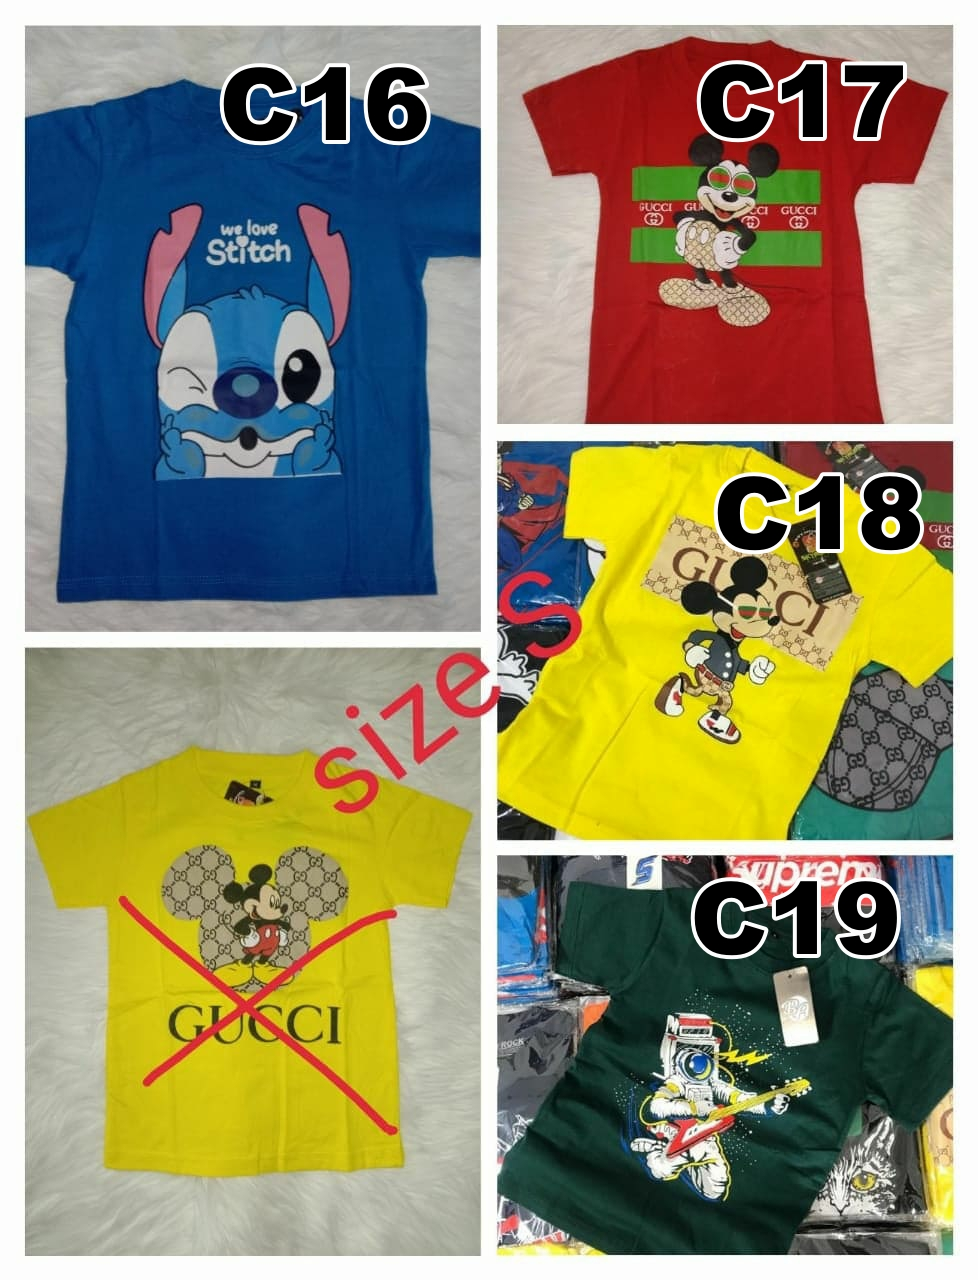 Kaos Distro Trend Keren Simple Ukuran S Cotton Combed